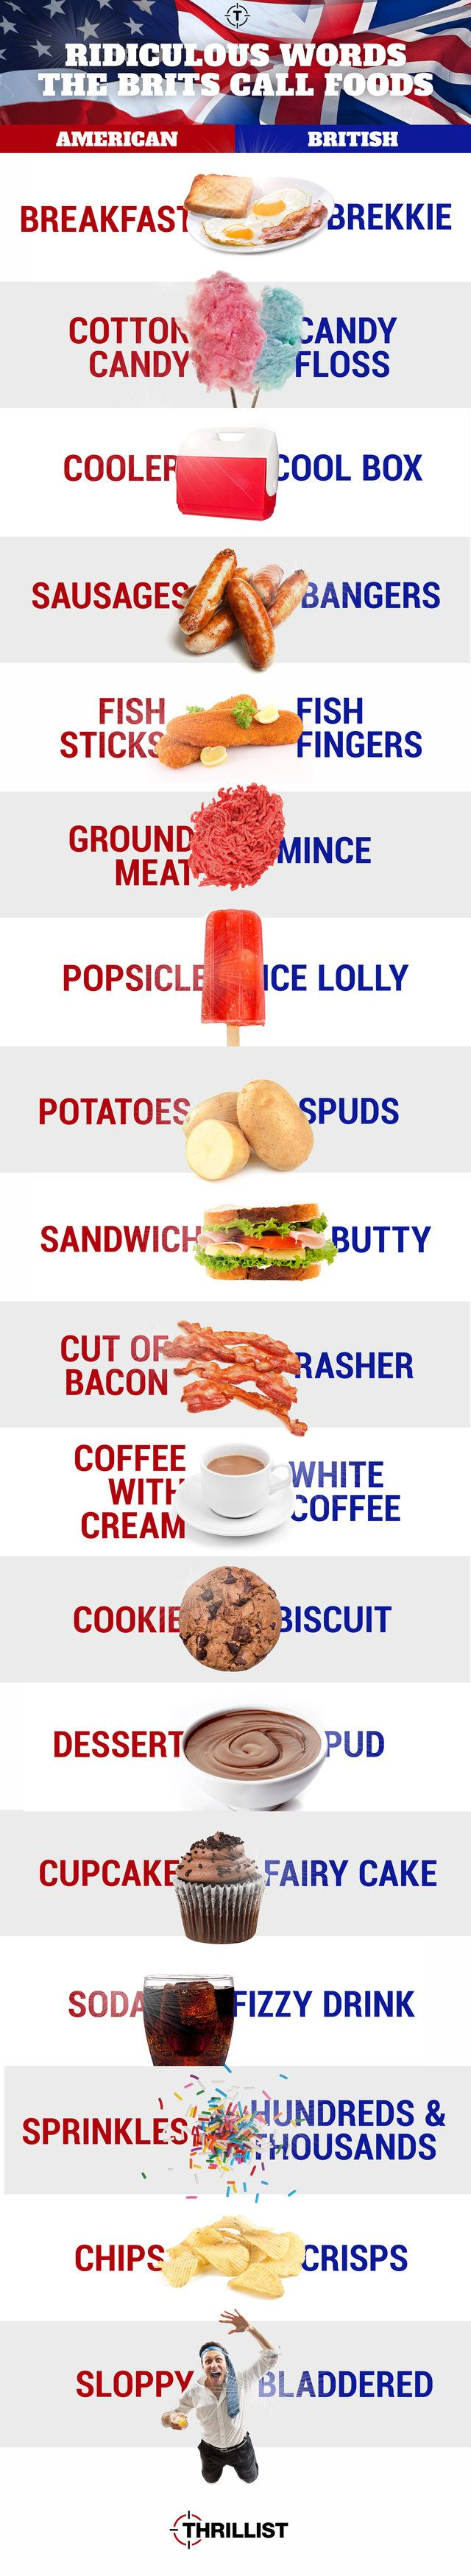 Brit Slang: Fun Graphic Shows The Different Words That Americans and Brits Use for Various Foods